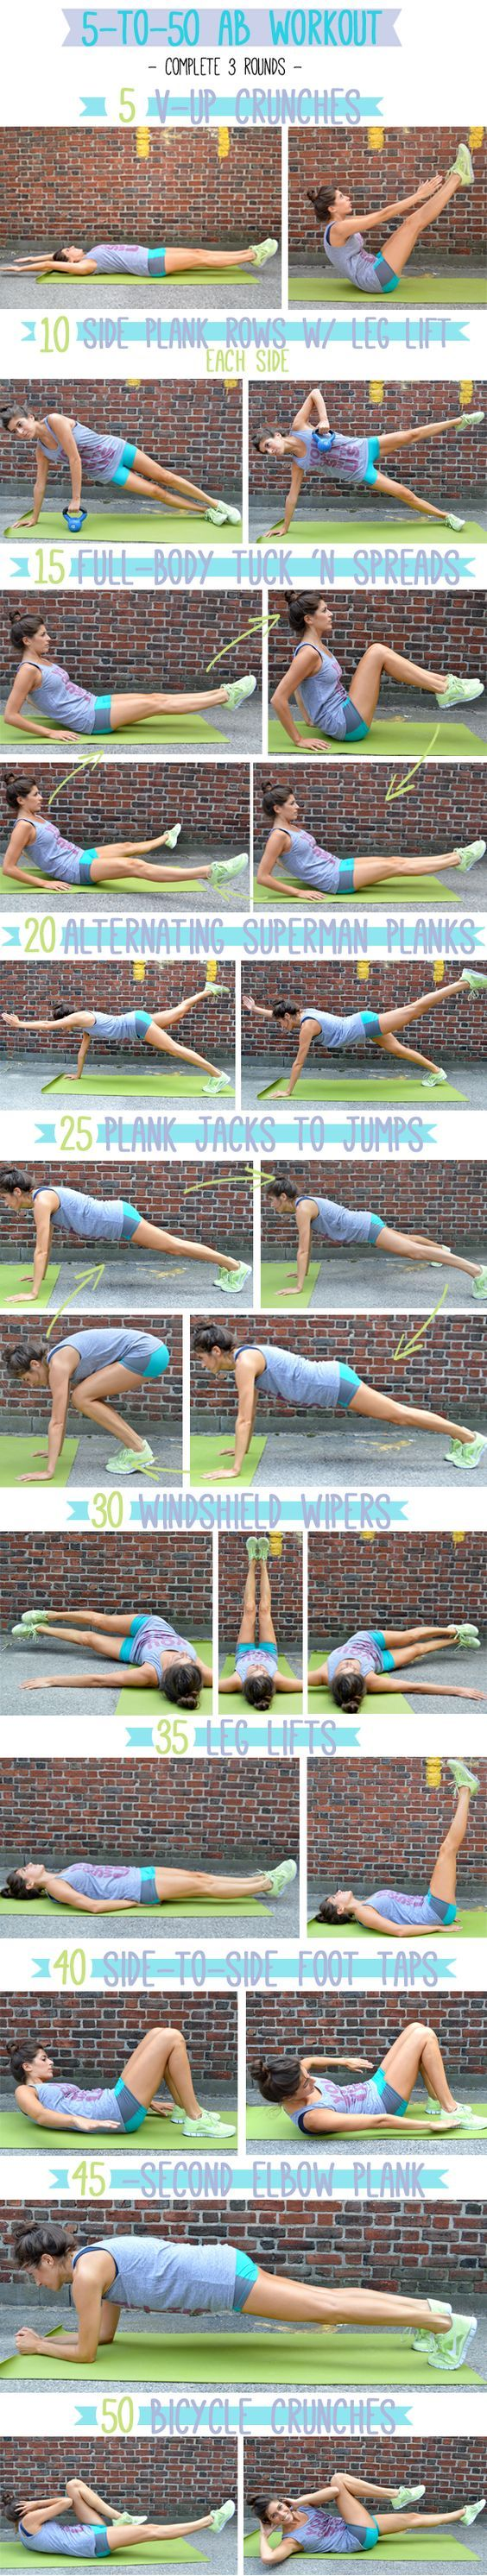 Workout: 5-to-50 ab workout: